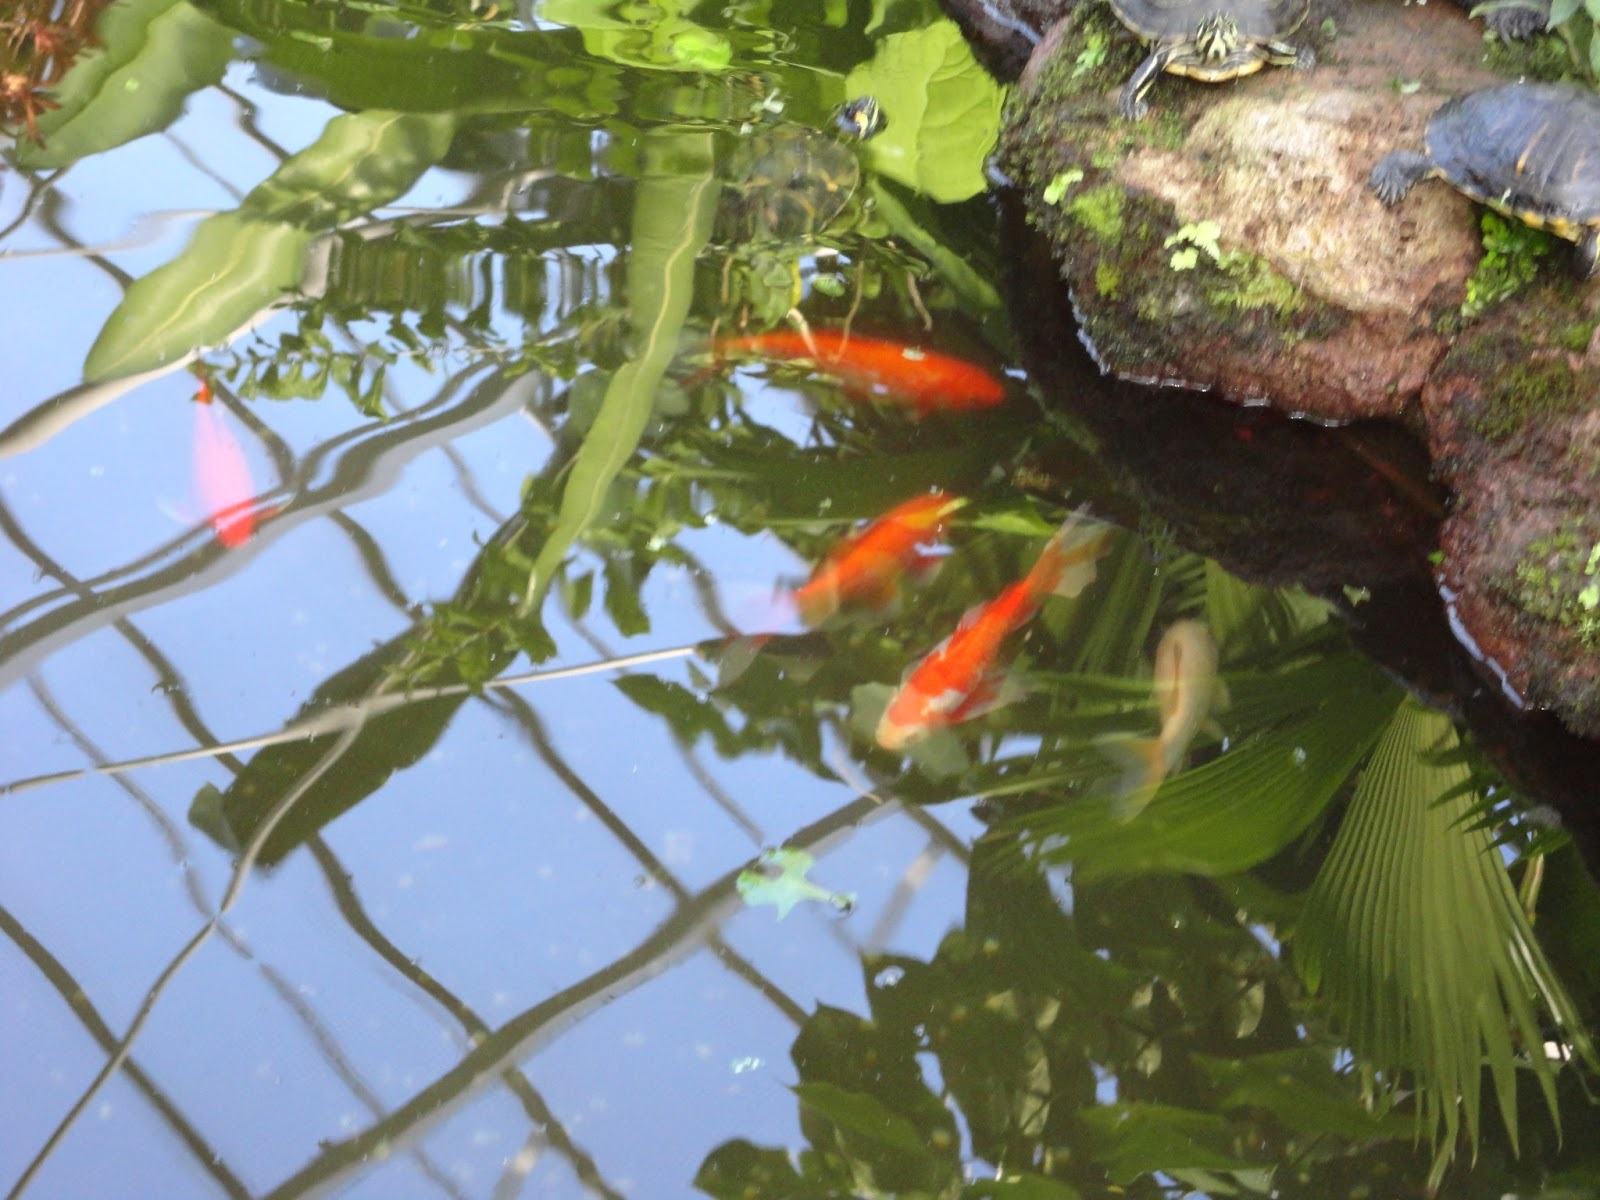 Paradise florists blog koi fish pond for Koi carp fish pond